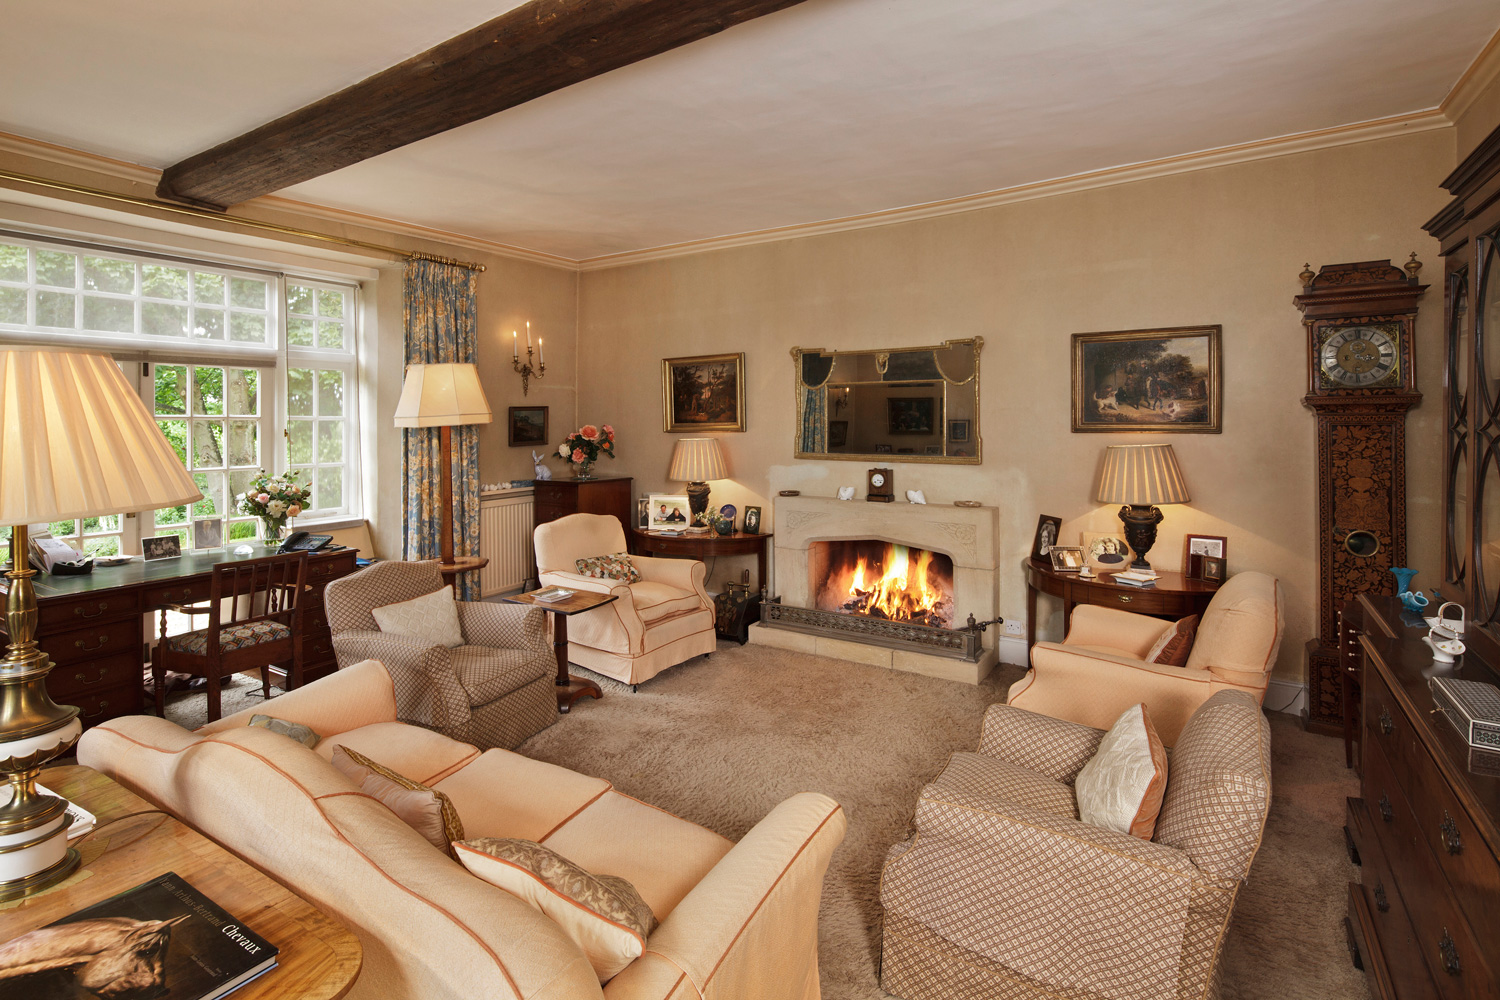 property of the day bletsoe castle bedfordshire town u0026 country